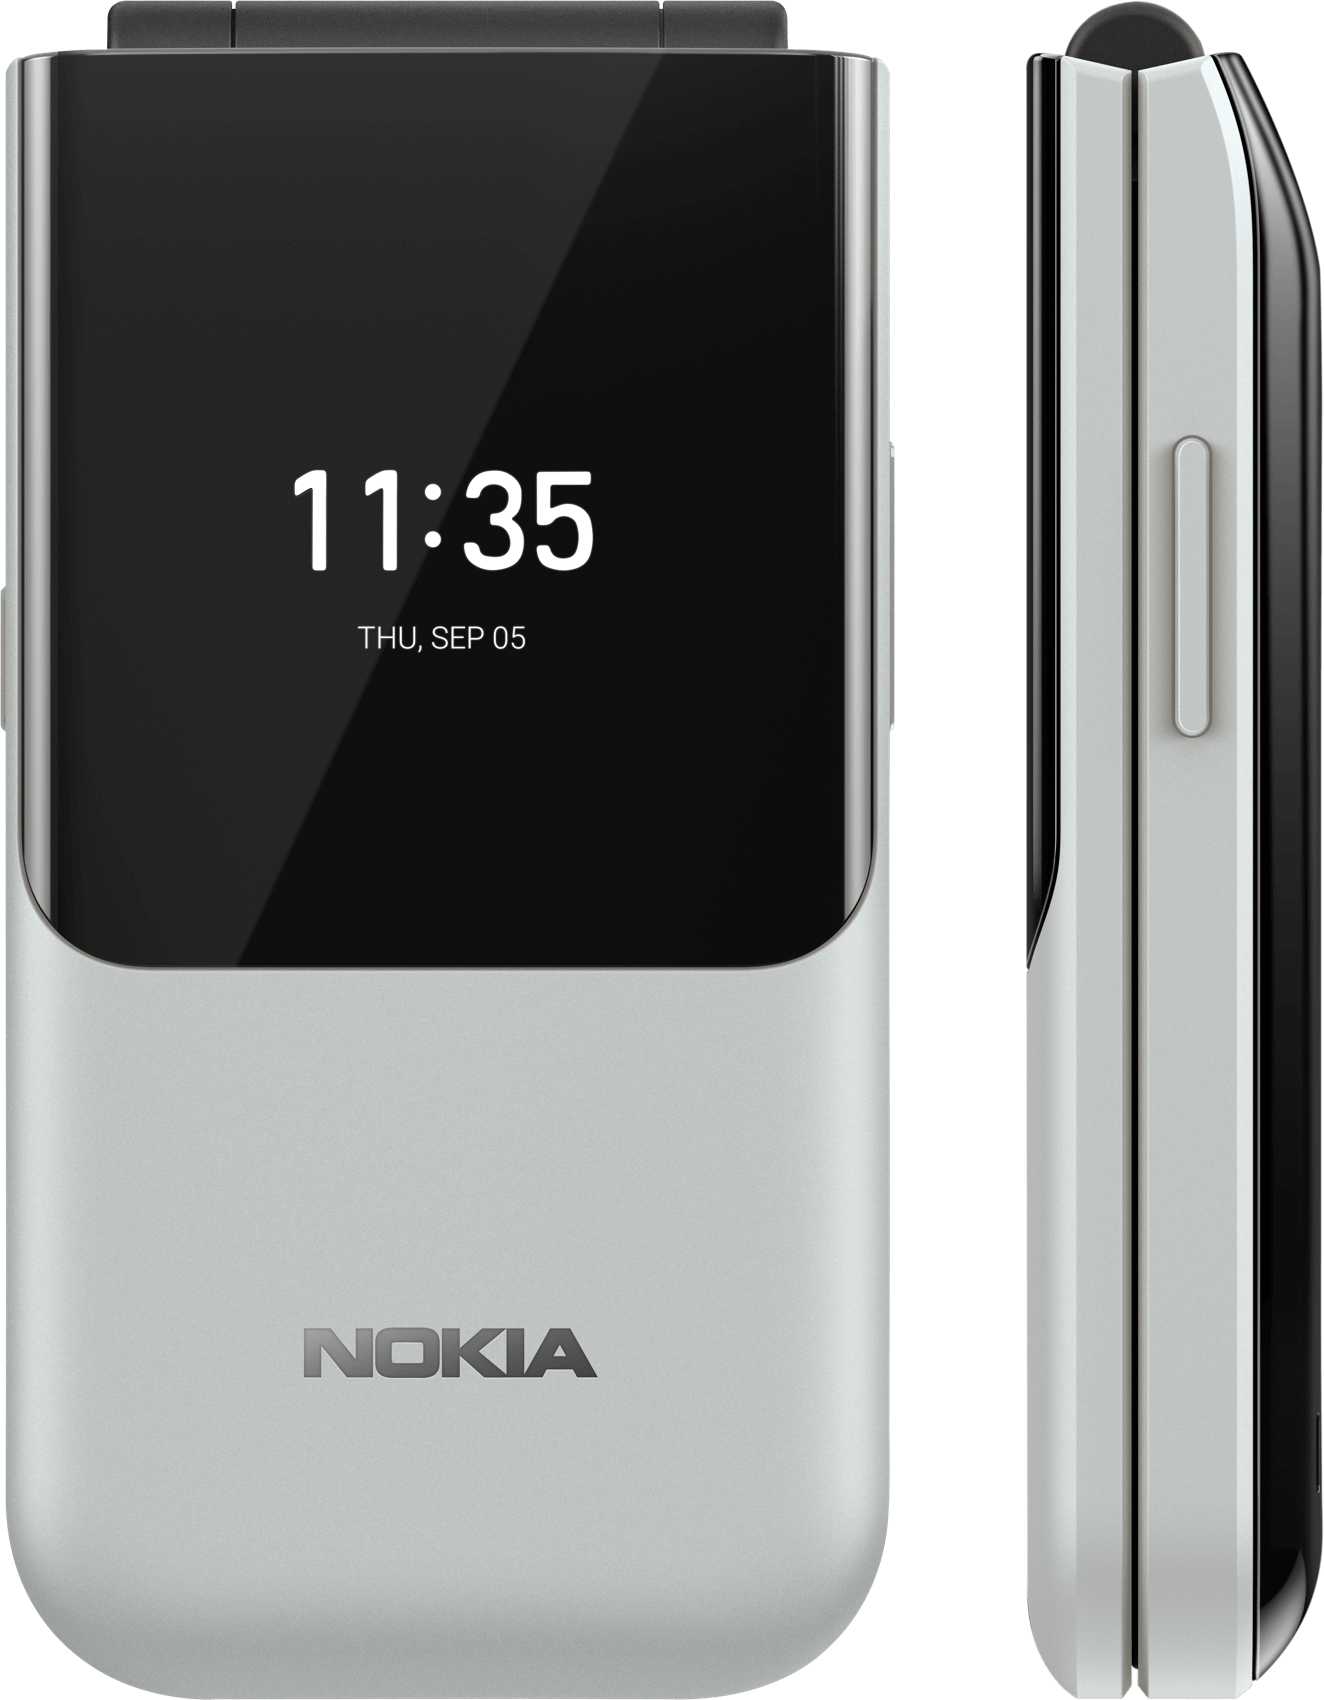 Nokia 2720 Flip Nokia Phones International English